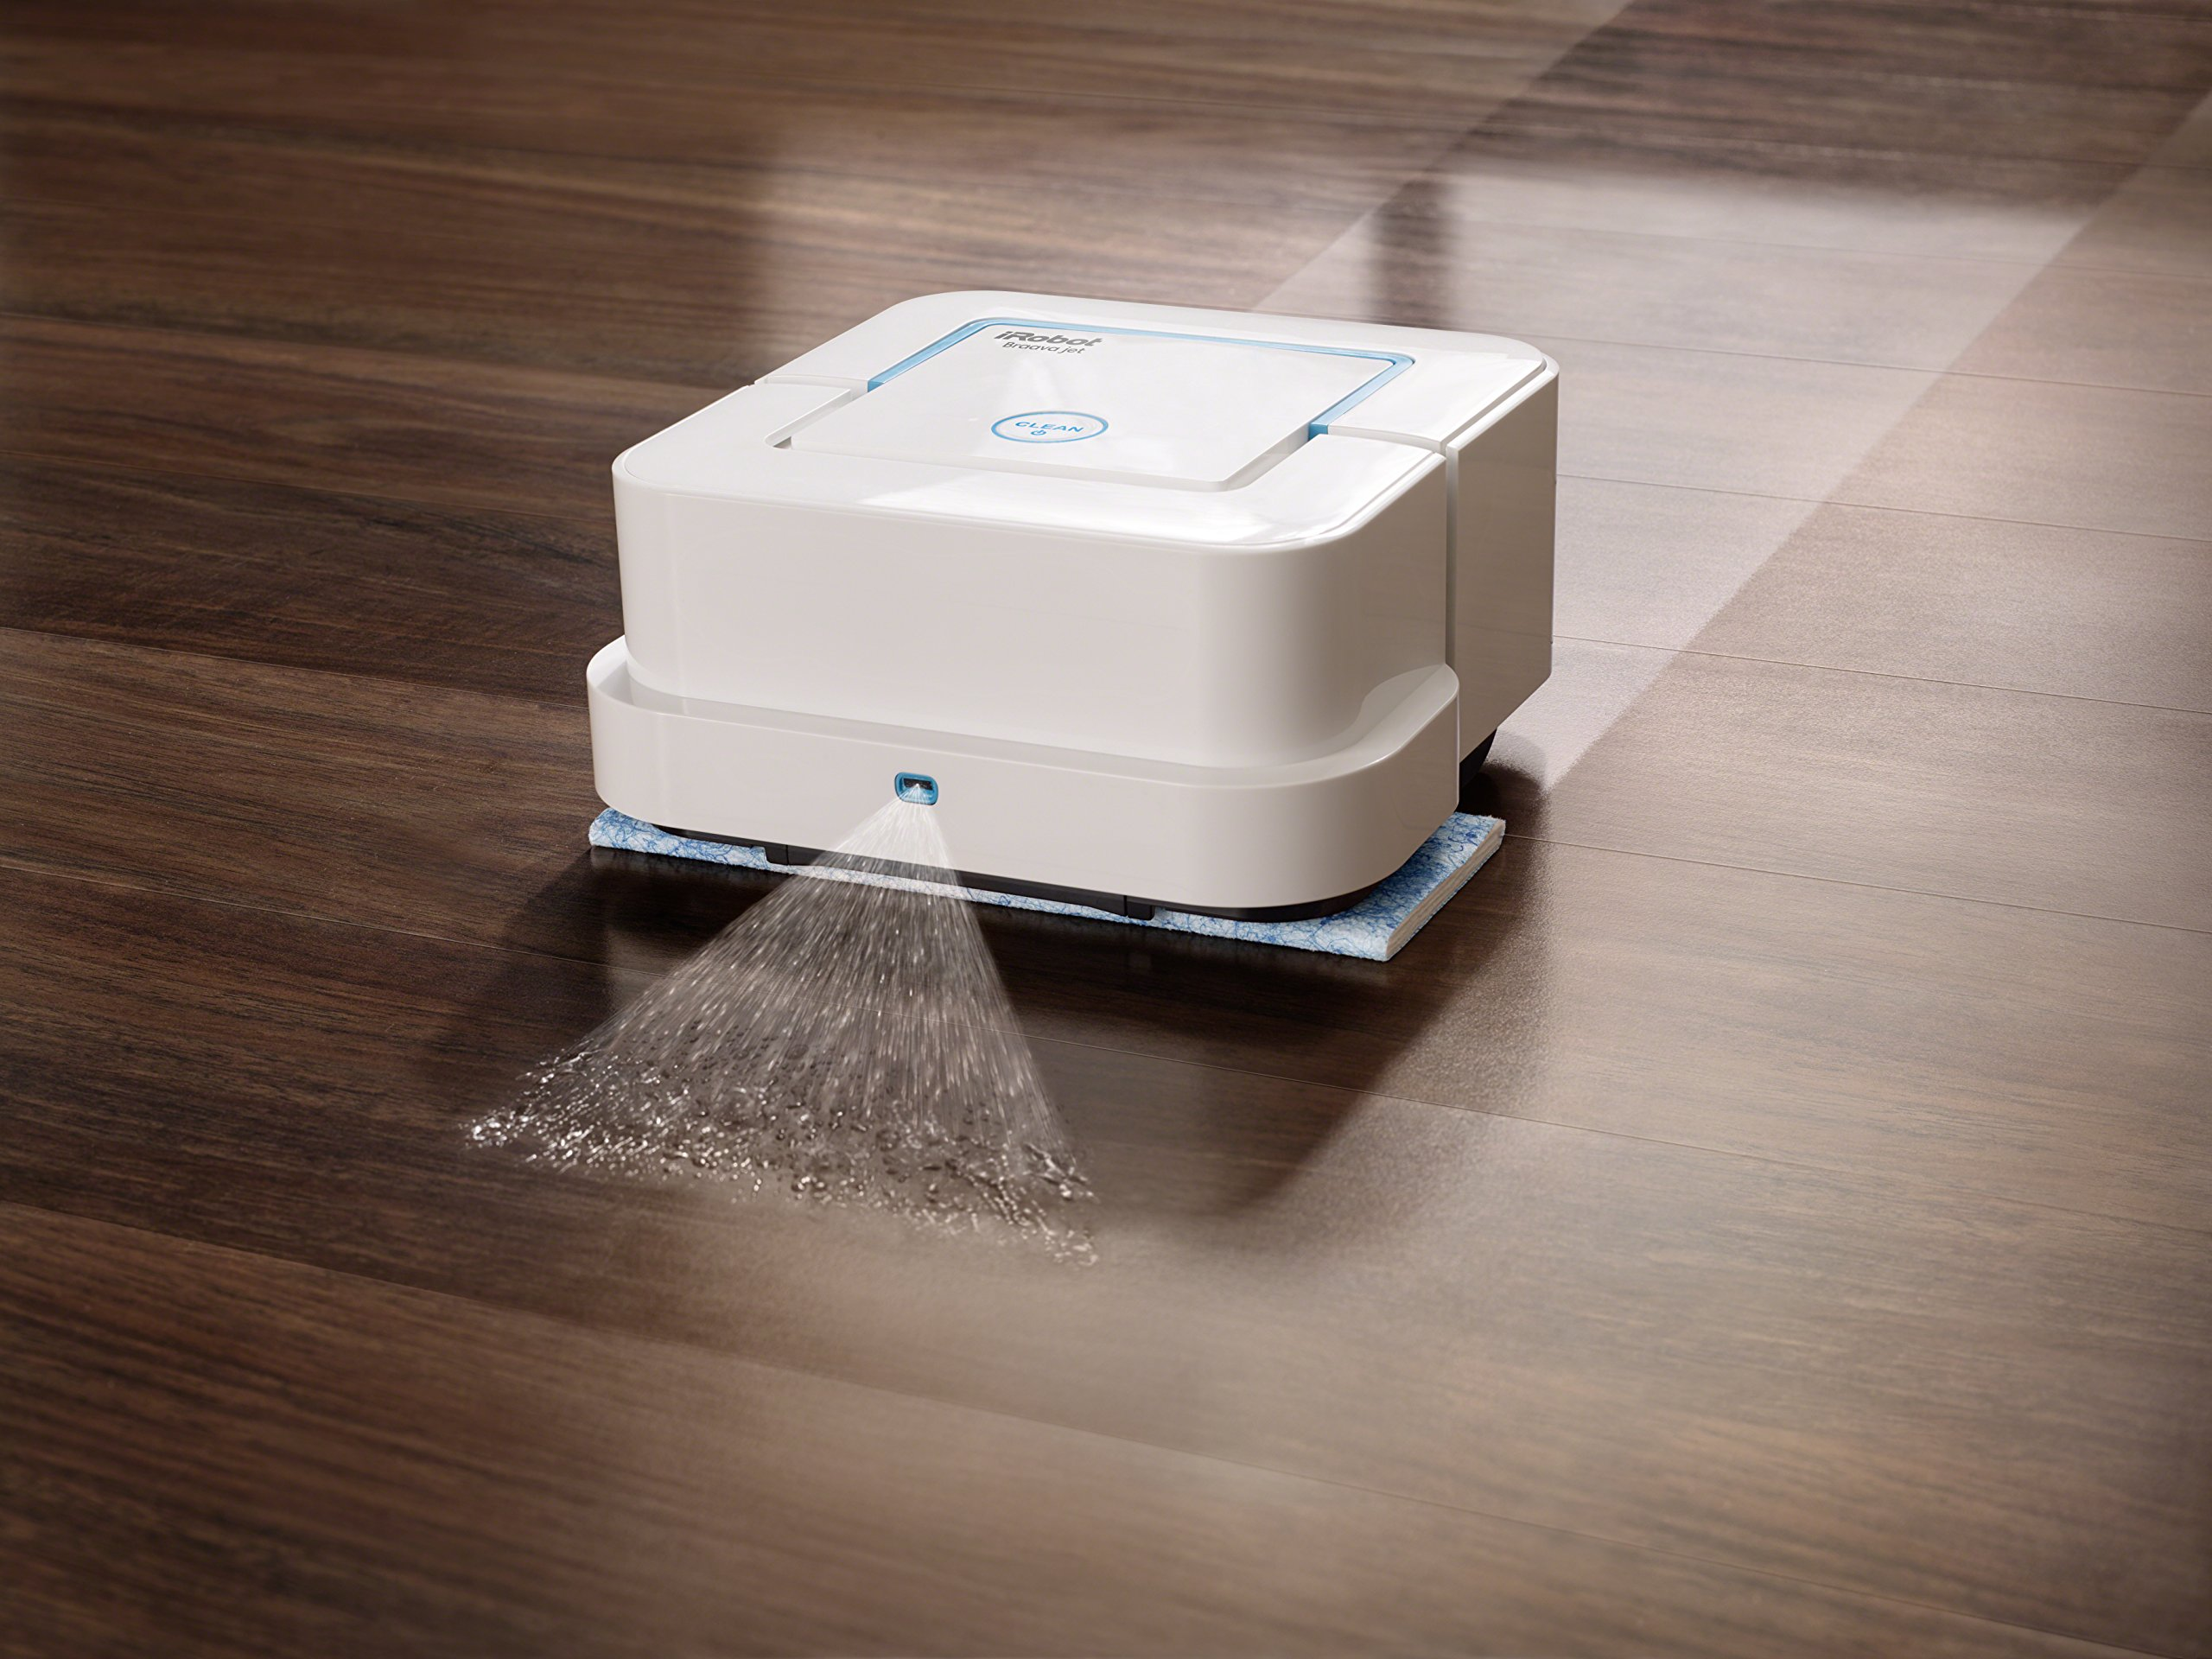 iRobot Braava jet  Robot Mop 3 Mops and sweeps hard floors including hardwood, tile, and stone in kitchens, bathrooms, and other small spaces Gets into hard-to-reach places, including under and around toilets, into corners, and below cabinets Precision Jet Spray and Vibrating Cleaning Head tackle dirt and stains such as dried coffee and soda